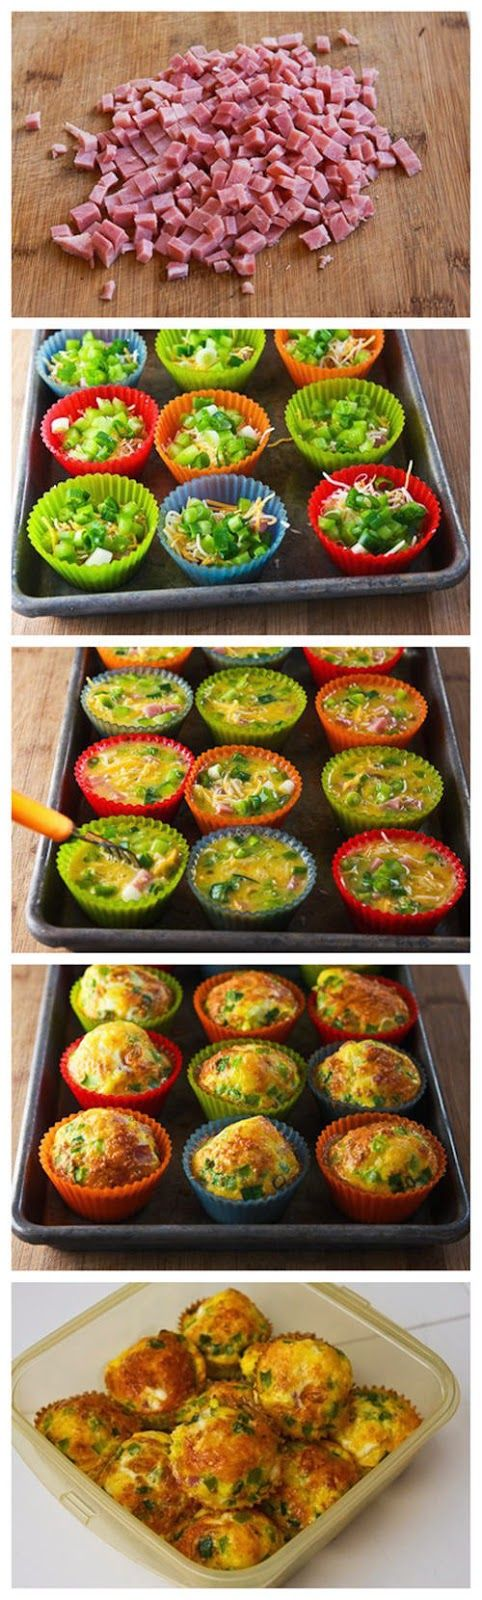 Easy mini quiches fill muffin tin with the filling (meats and veggies) one egg per mini quiche, beat with a teaspoon of cream for each season accordingly... Pour in and top with cheese bake until golden Enjoy!